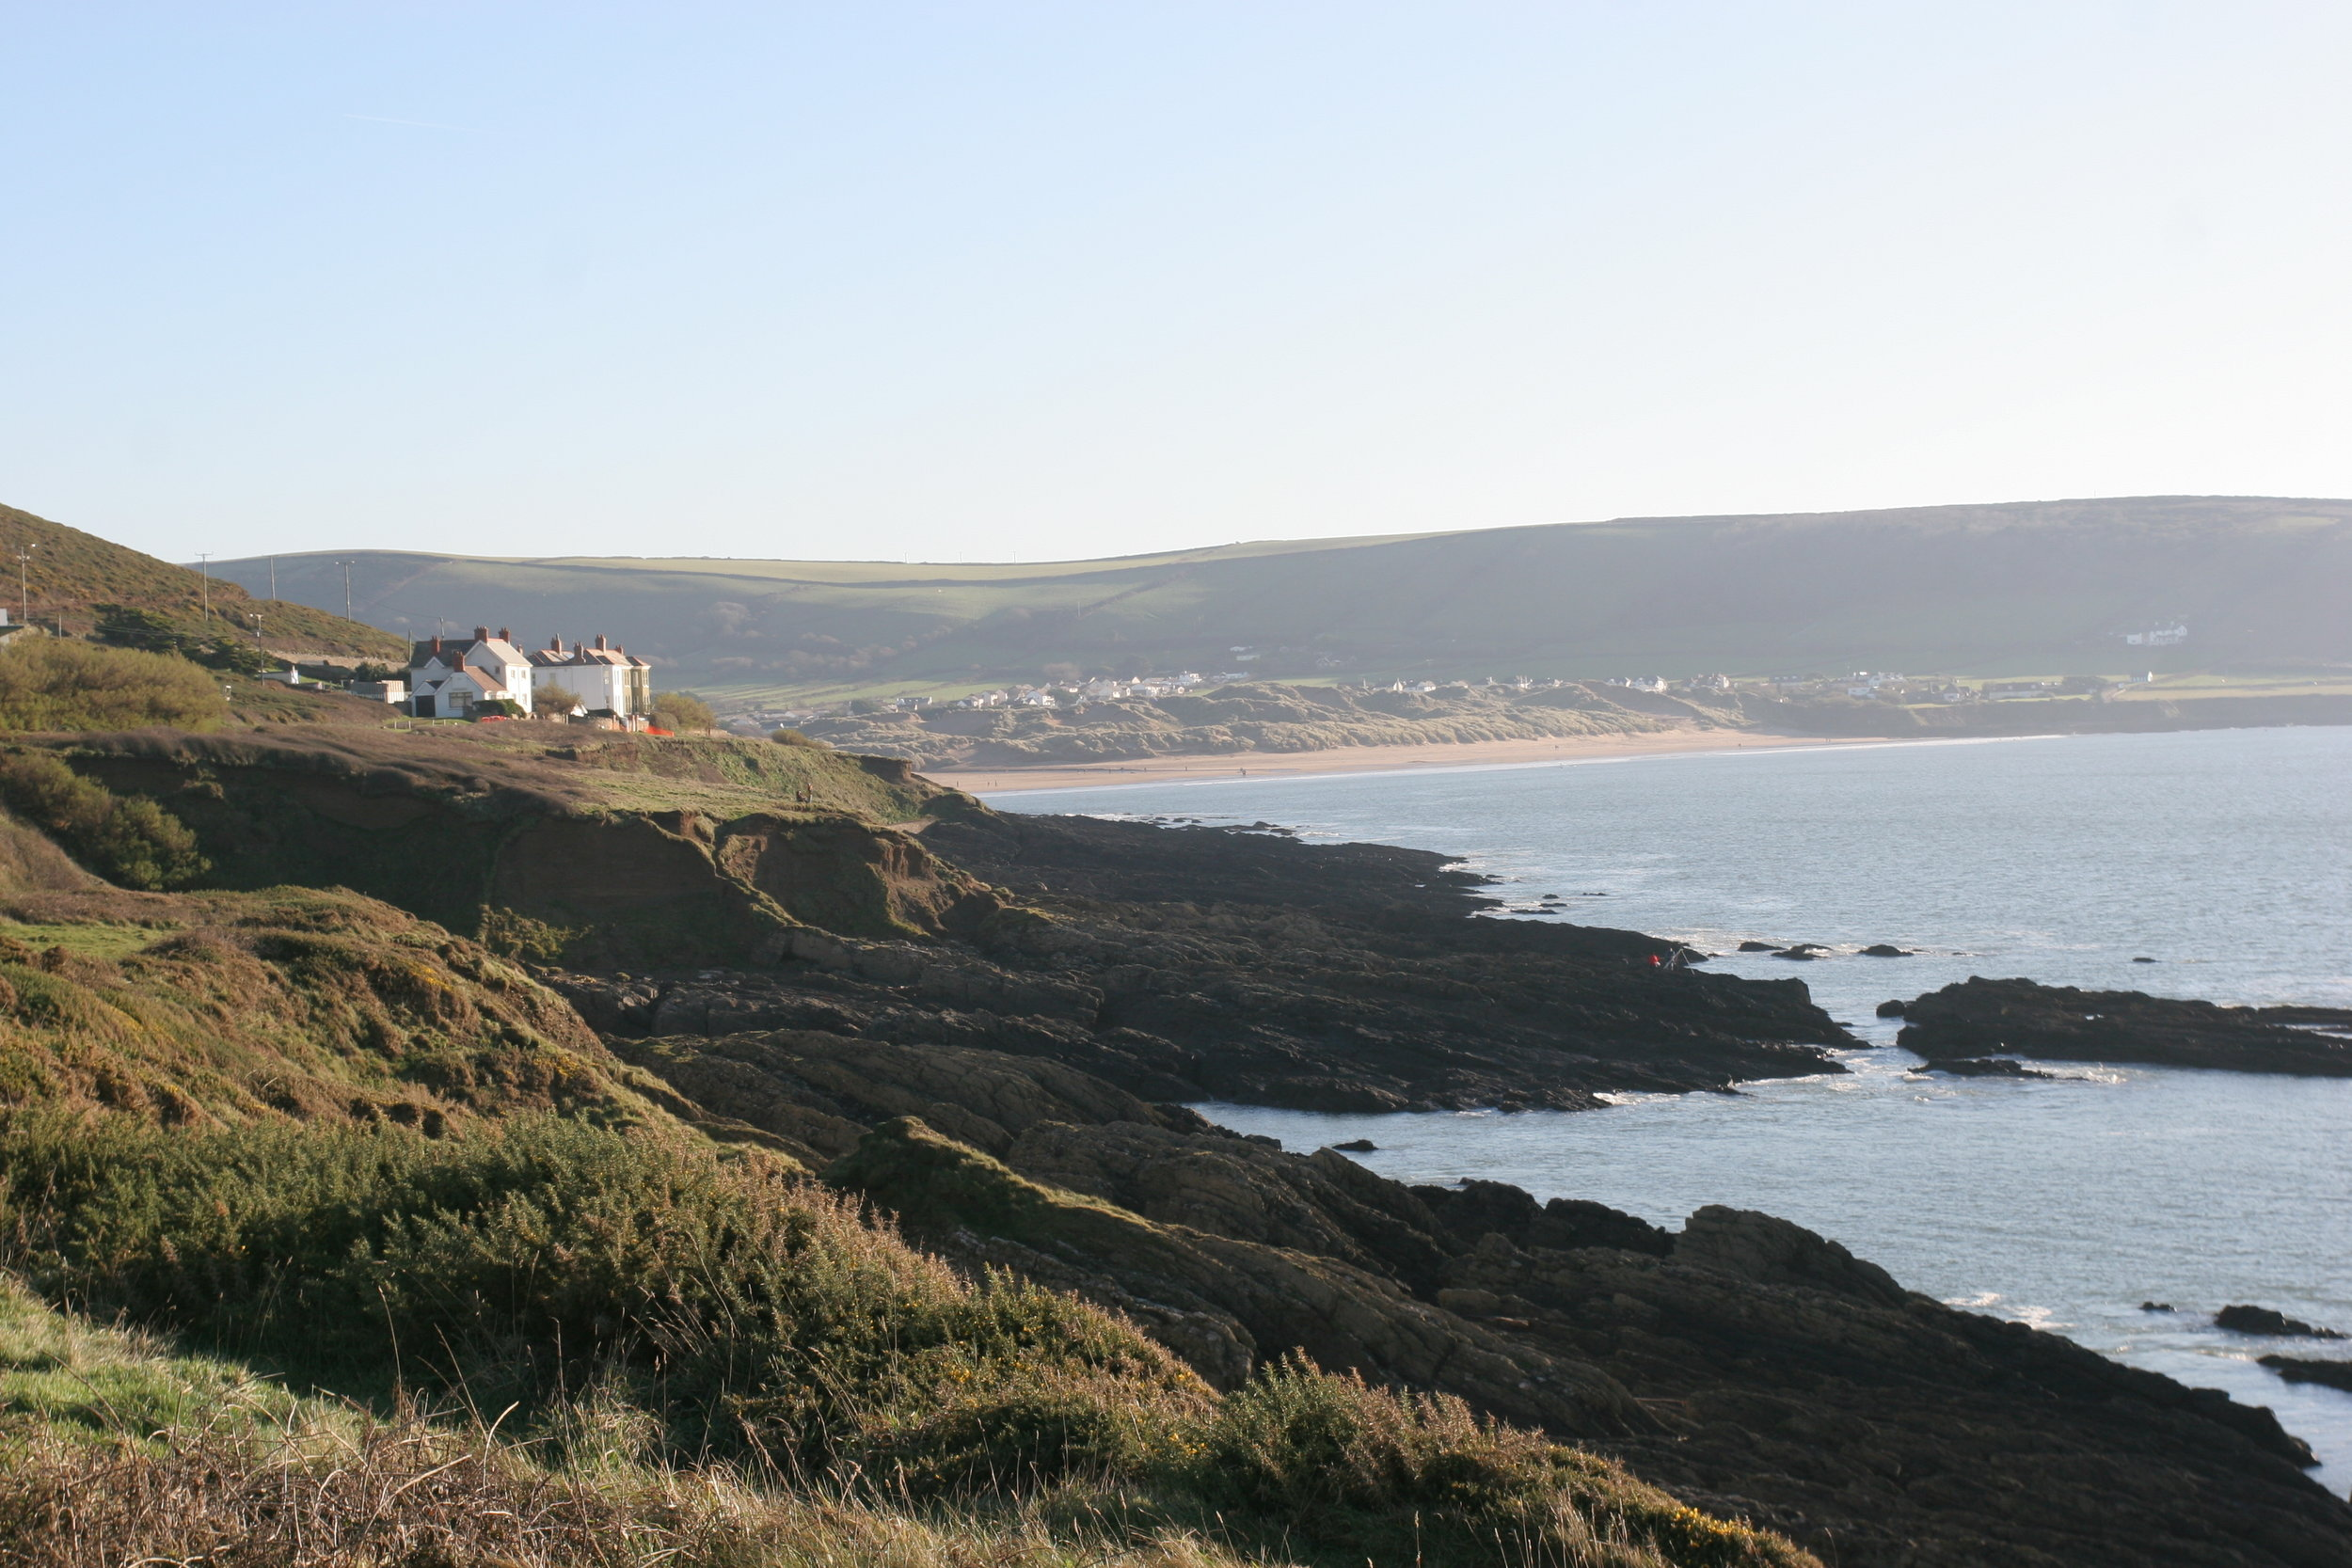 Looking back at Croyde beach from the lovely Baggy Point coastal walk